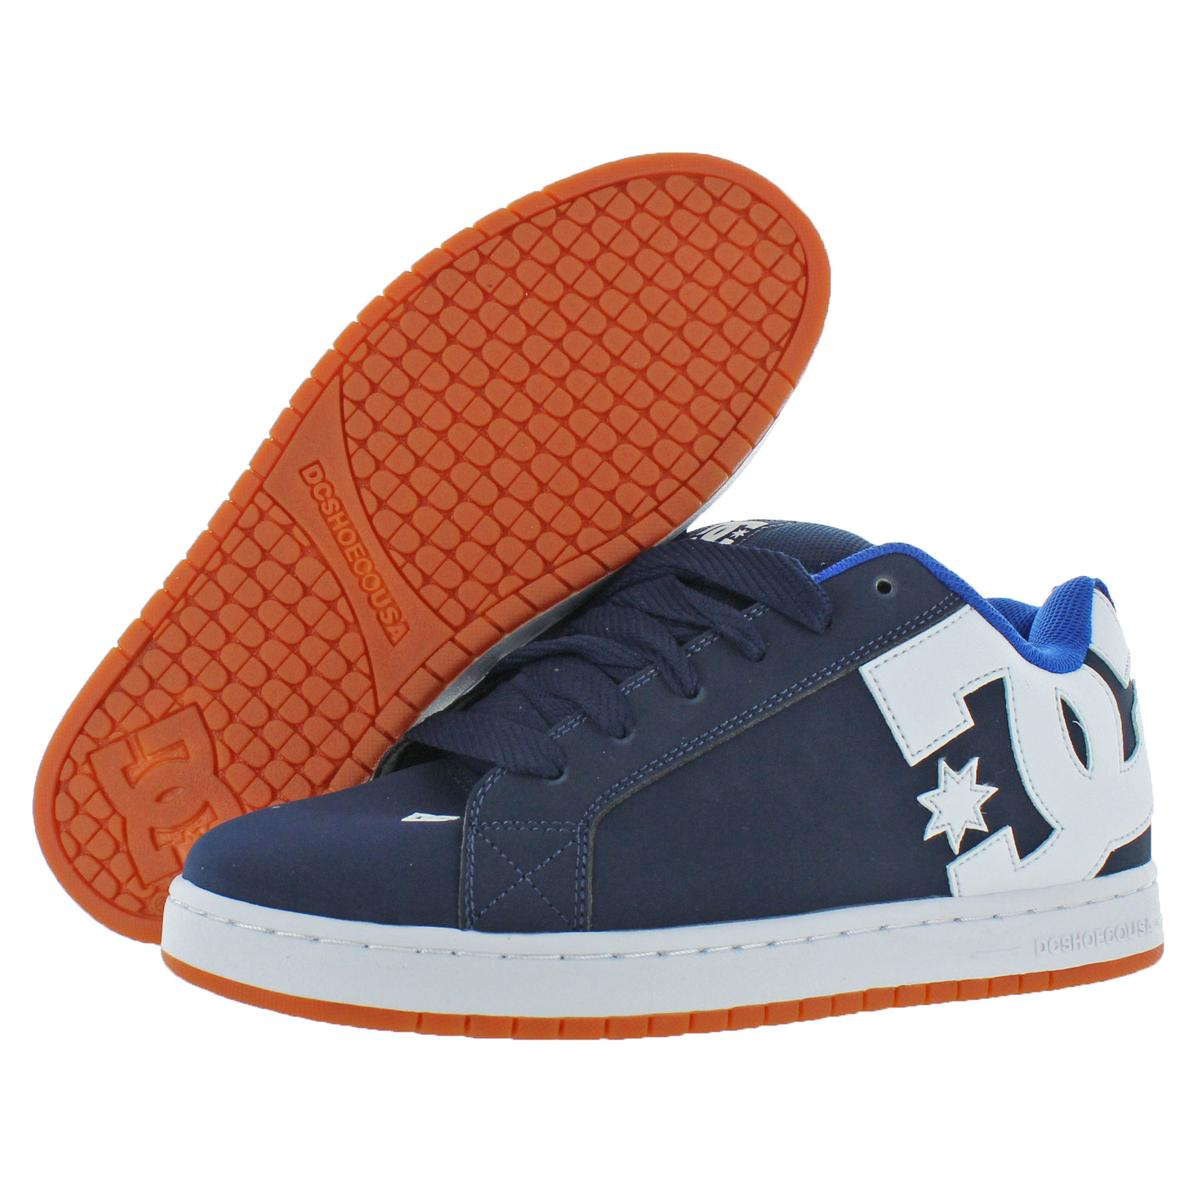 DC Shoes Men/'s Court Graffik Leather Padded Skate Shoes Sneakers